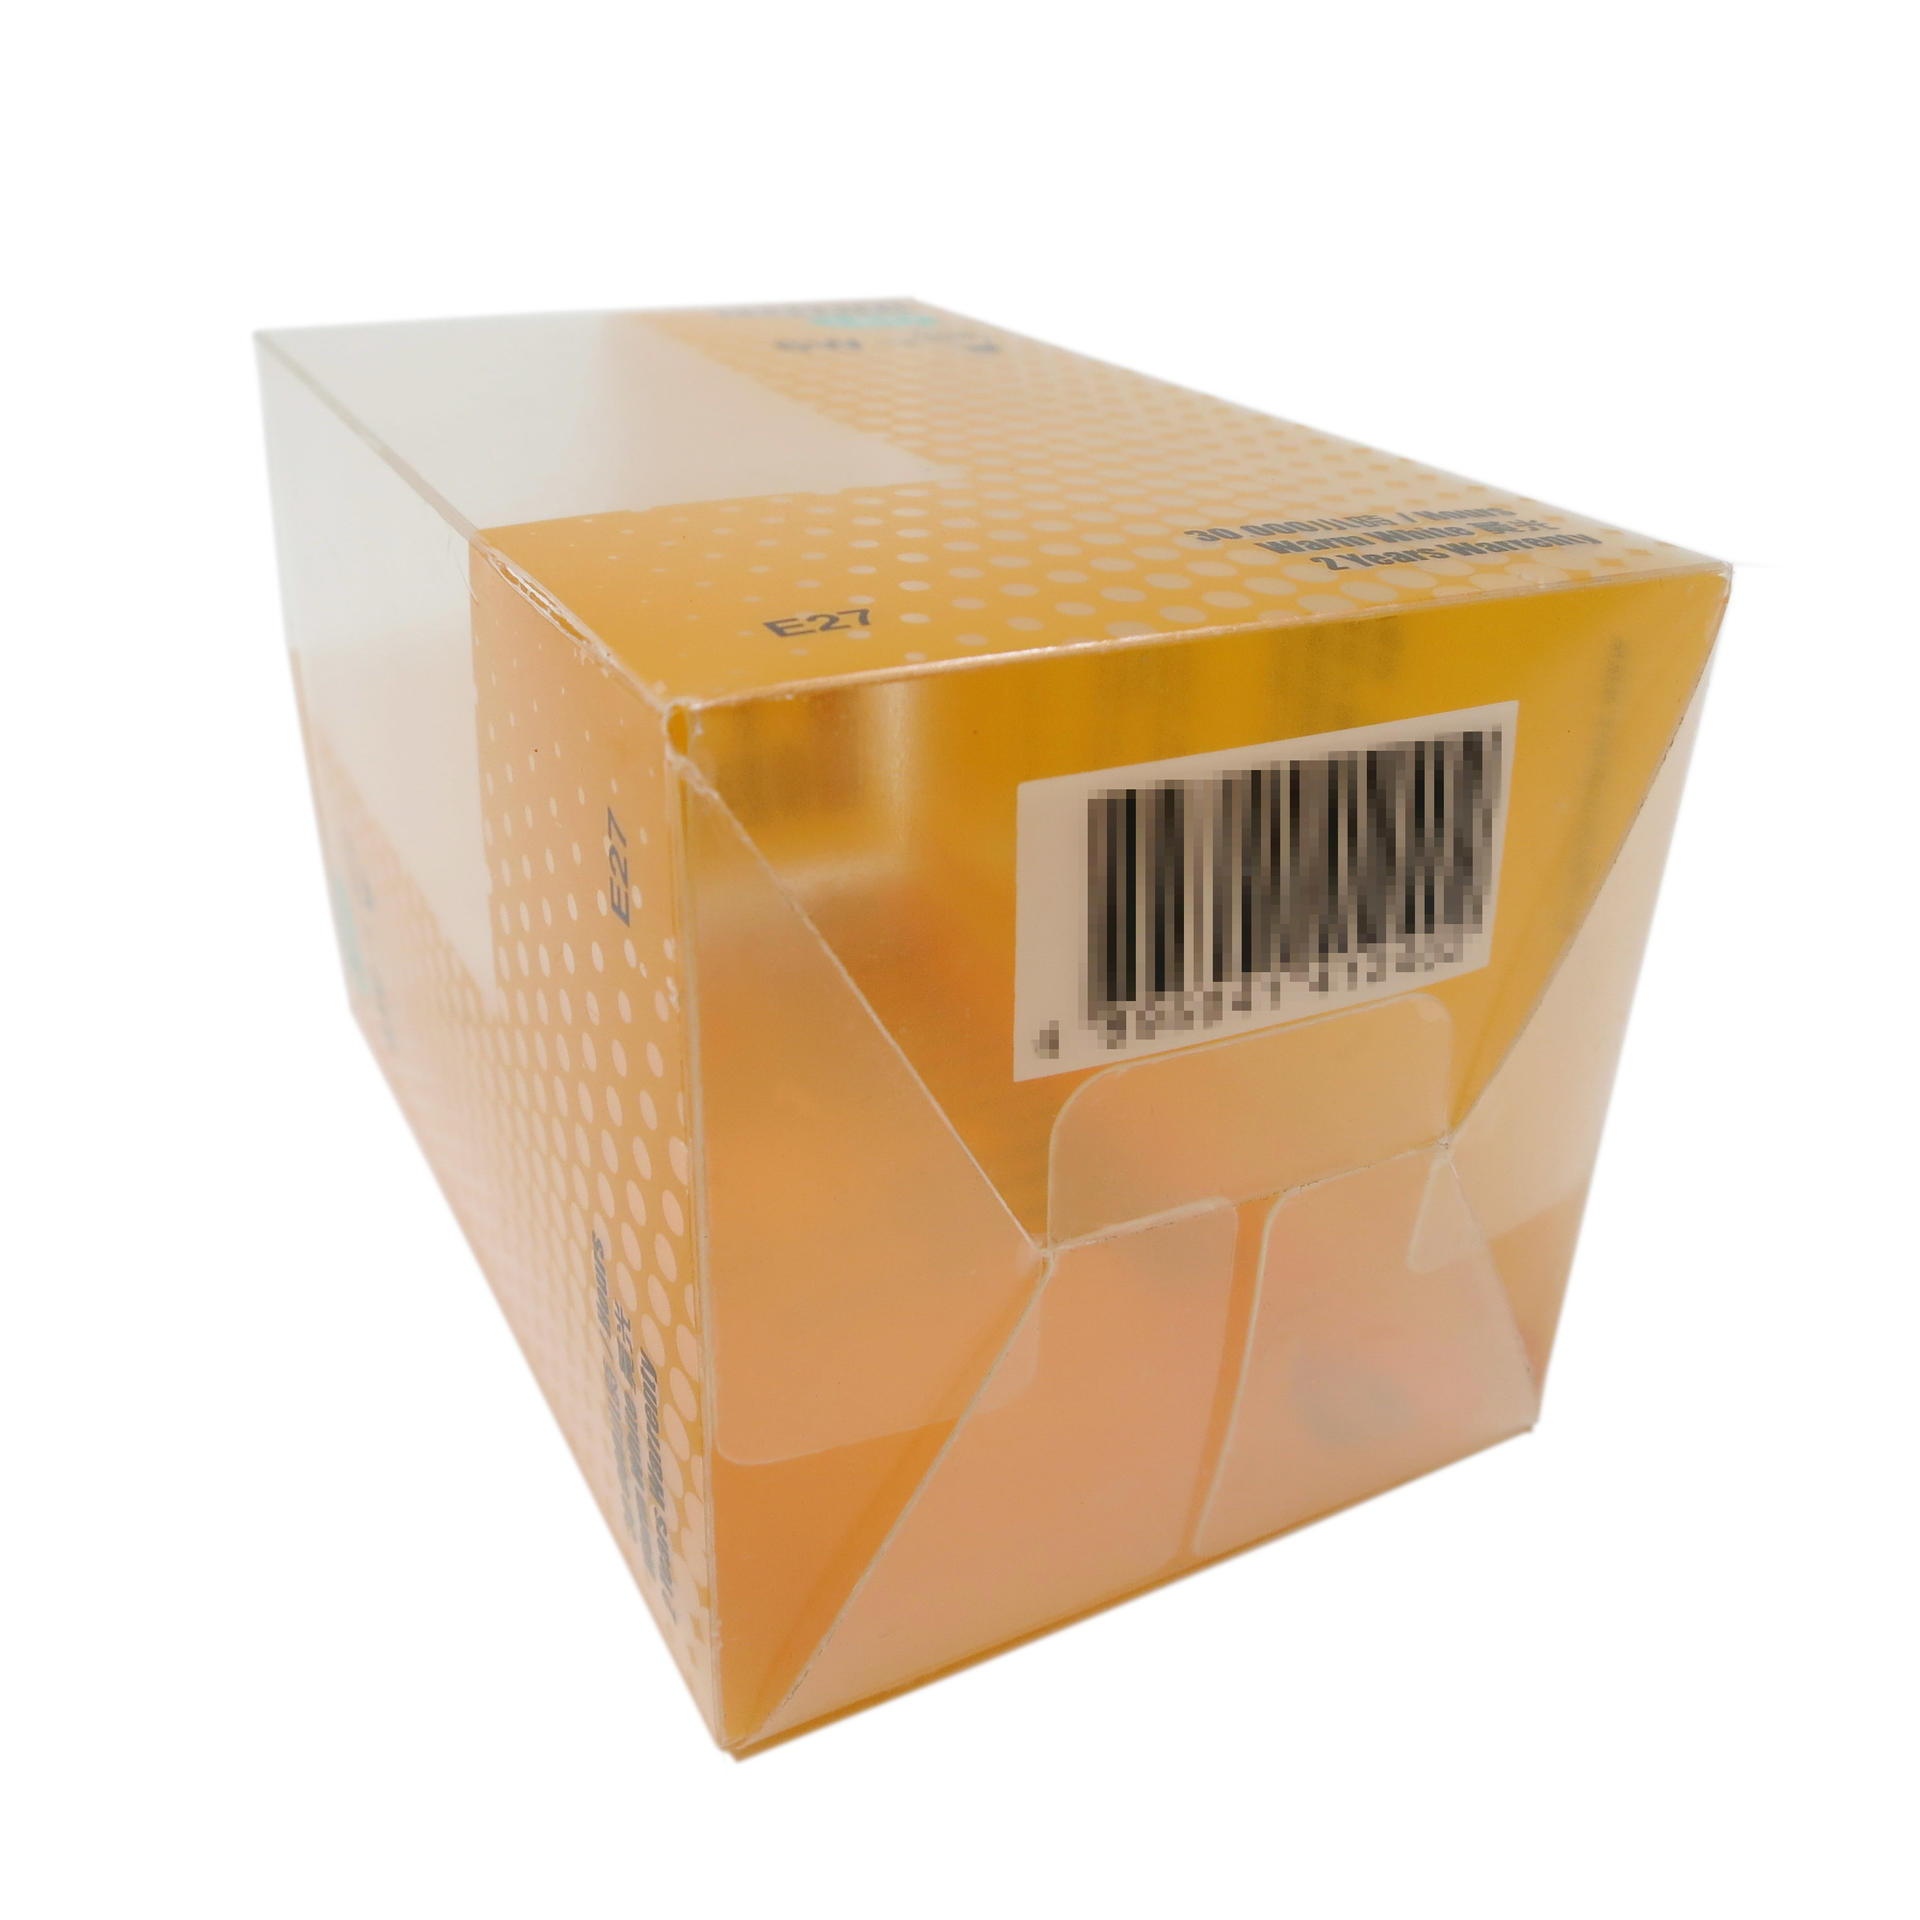 Retail Lock-End Closure Plastic Packaging Box for 6W LED Bulb